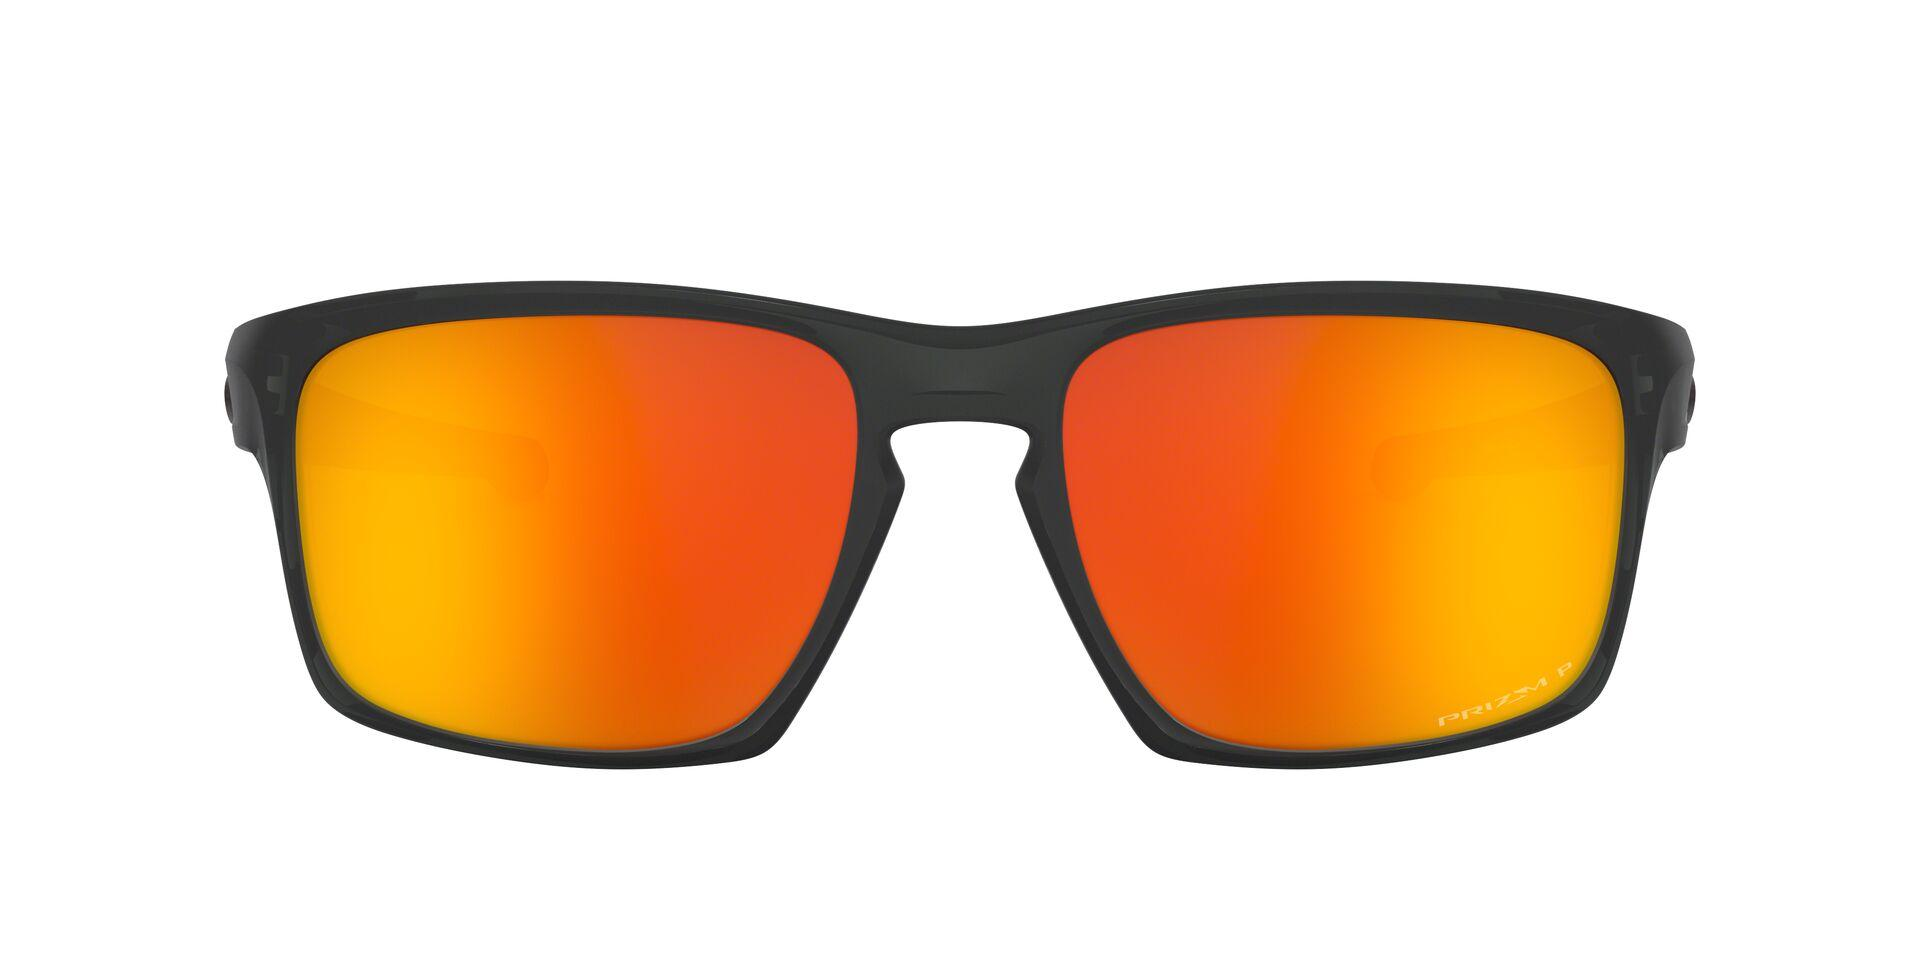 78b32a8ea7c1b Oakley Philippines - Oakley Sunglasses for sale - prices   reviews ...